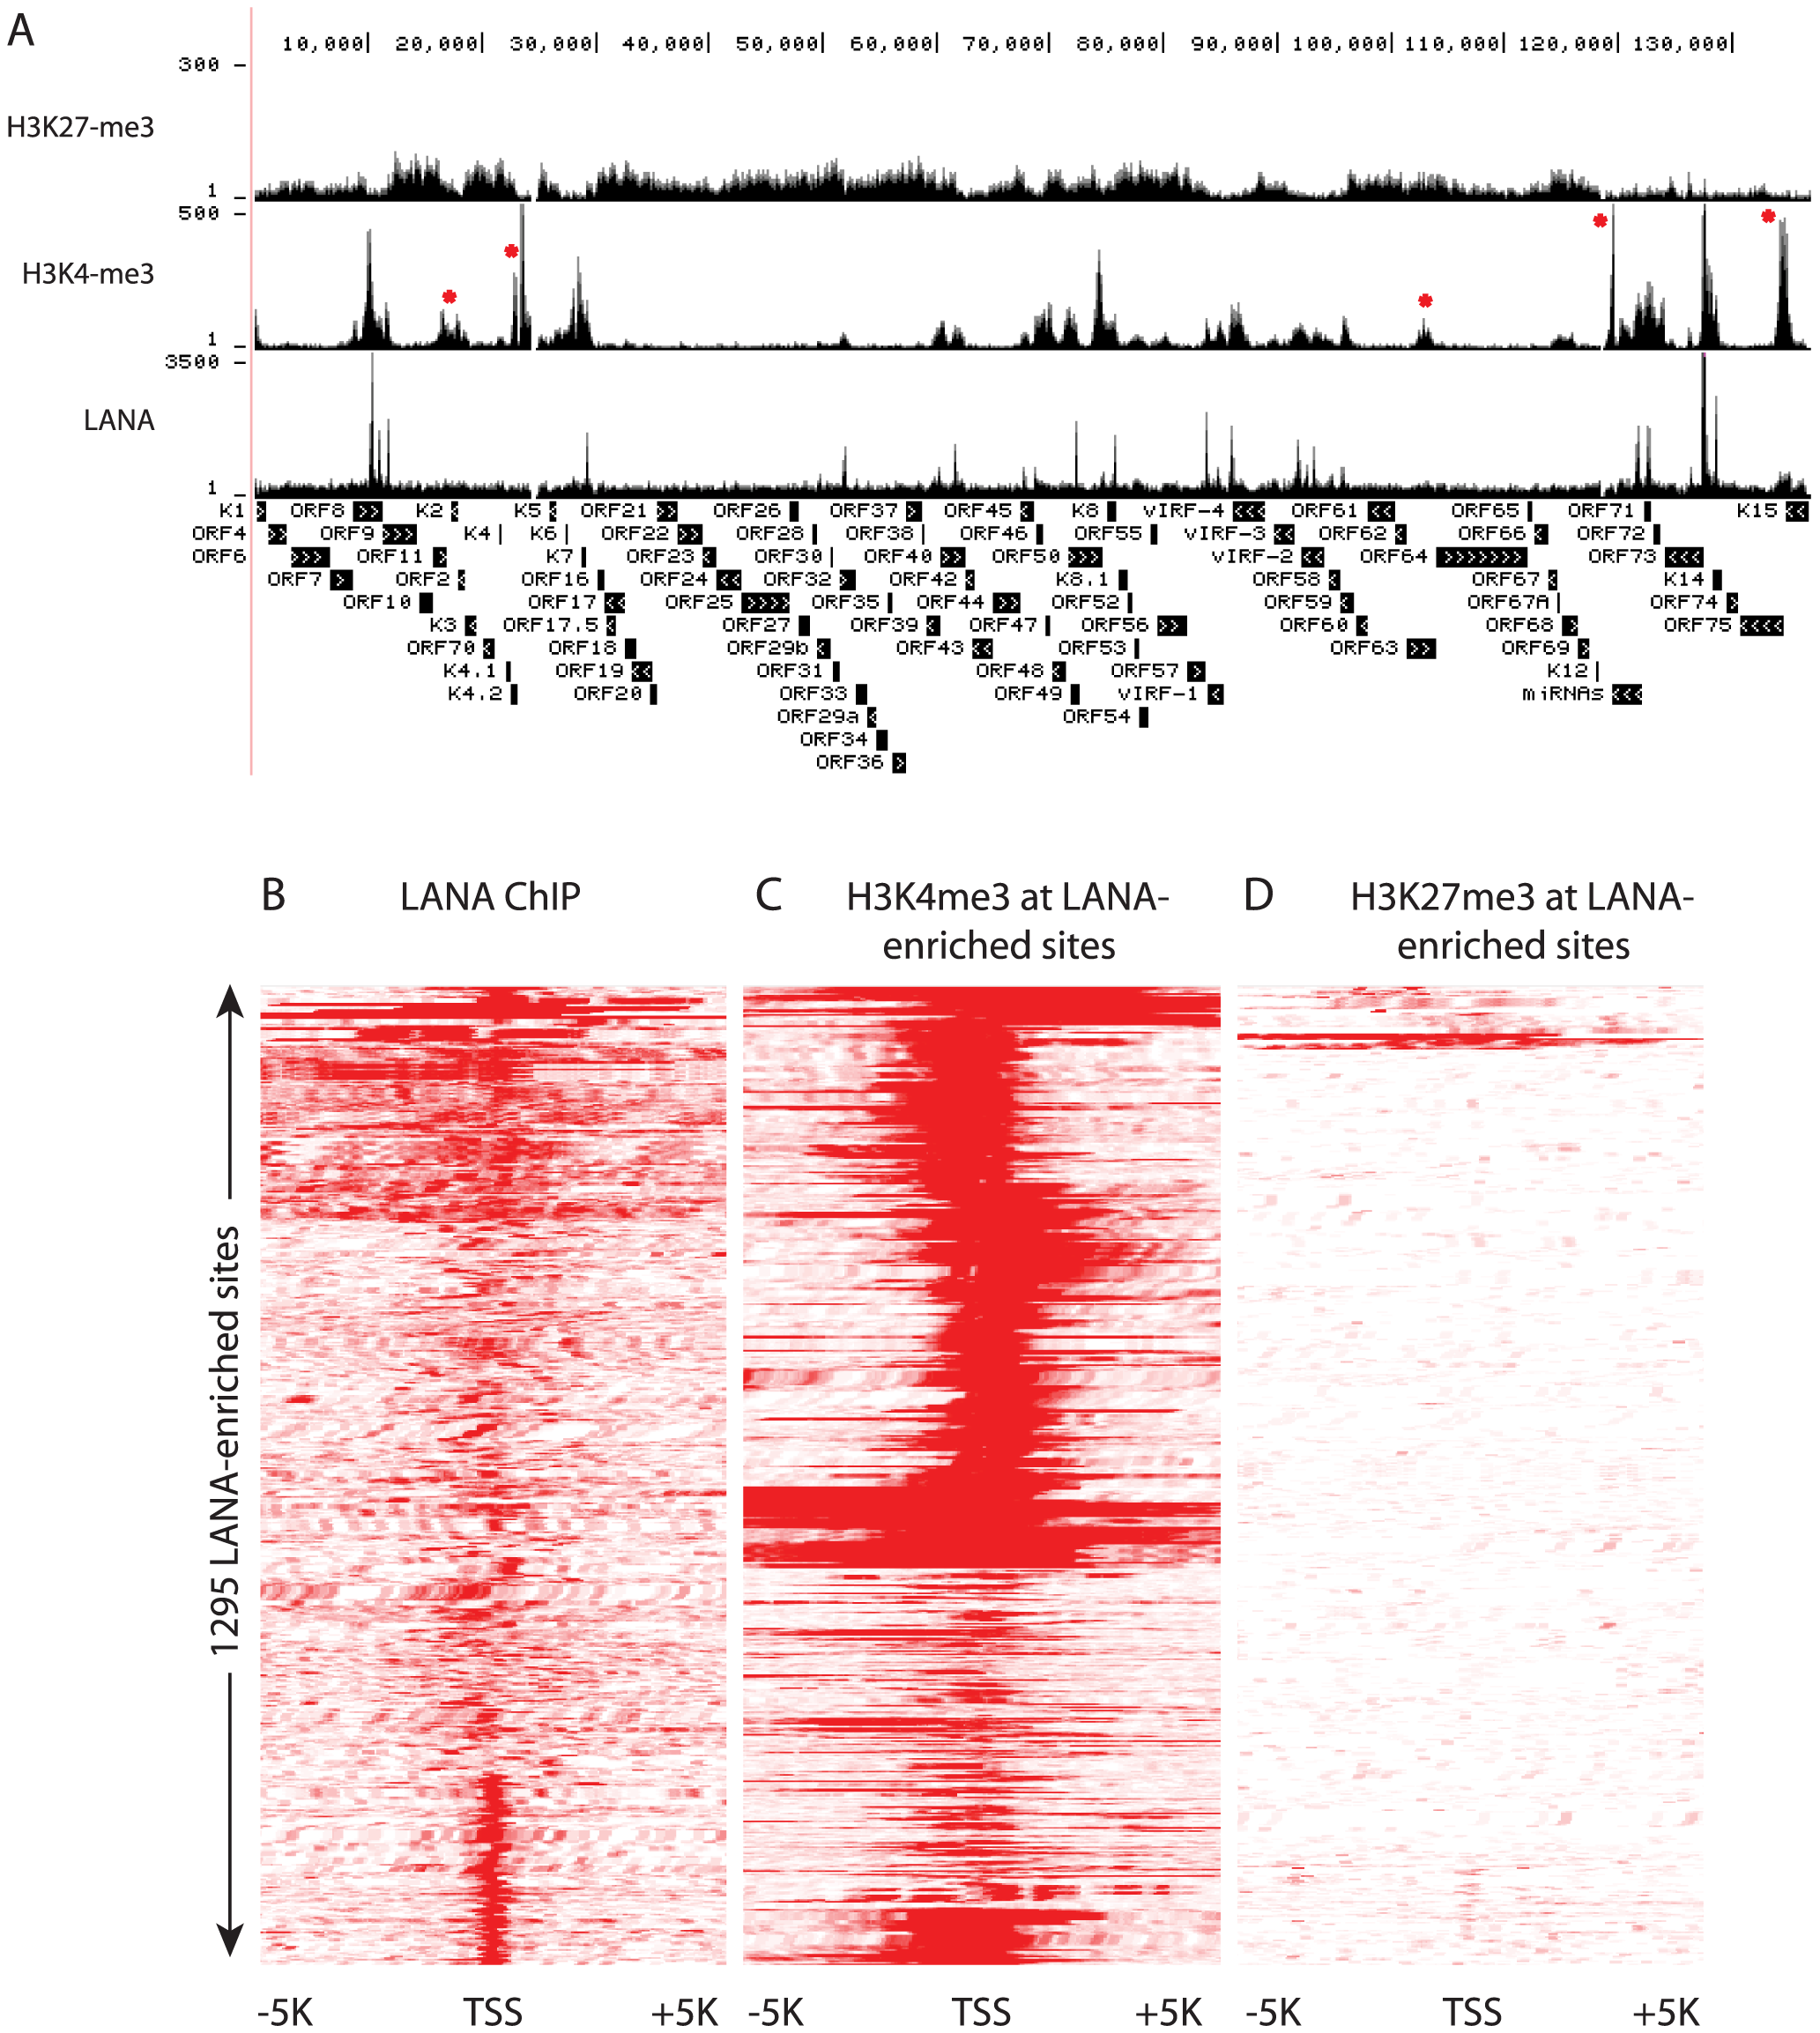 LANA and H3K4me3 but not H3K27 overlap at many regions of the KSHV and human genome in BCBL-1 cells.